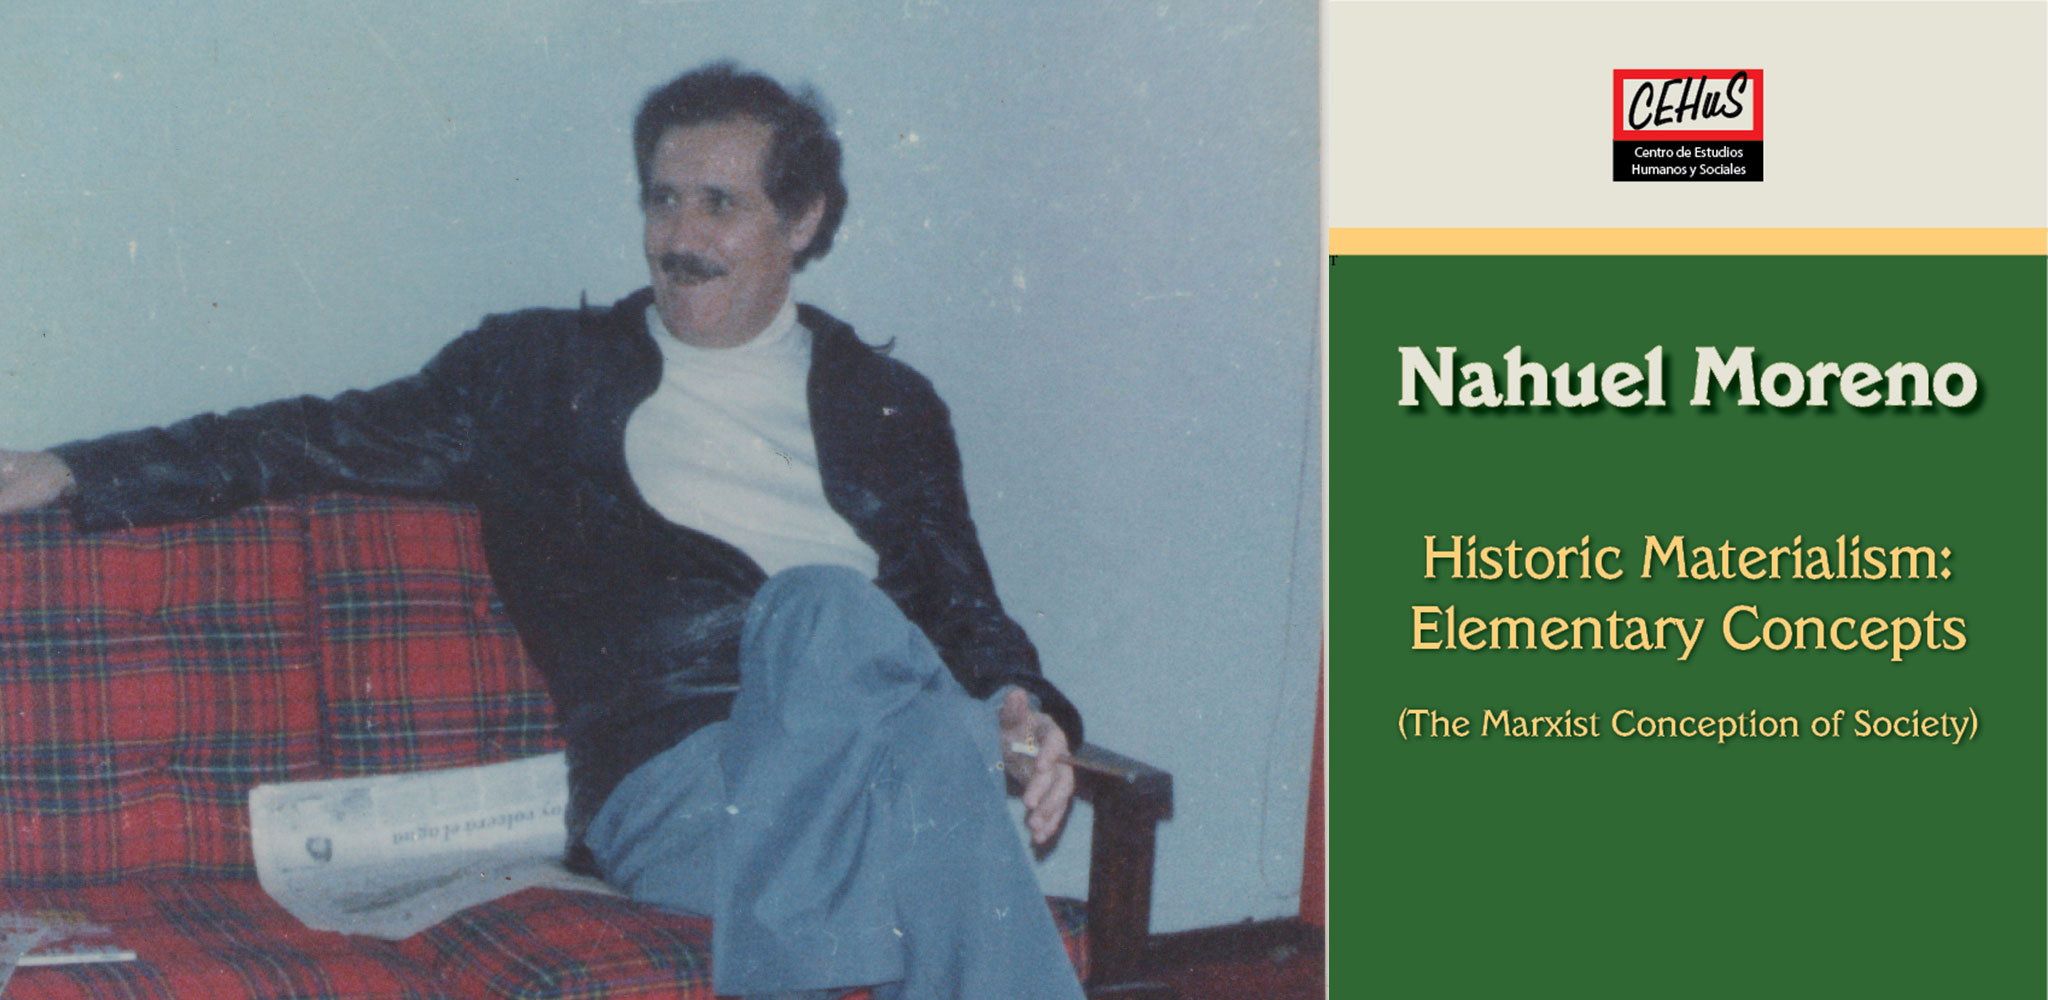 HISTORIC MATERIALISM: ELEMENTARY CONCEPTS (1984)